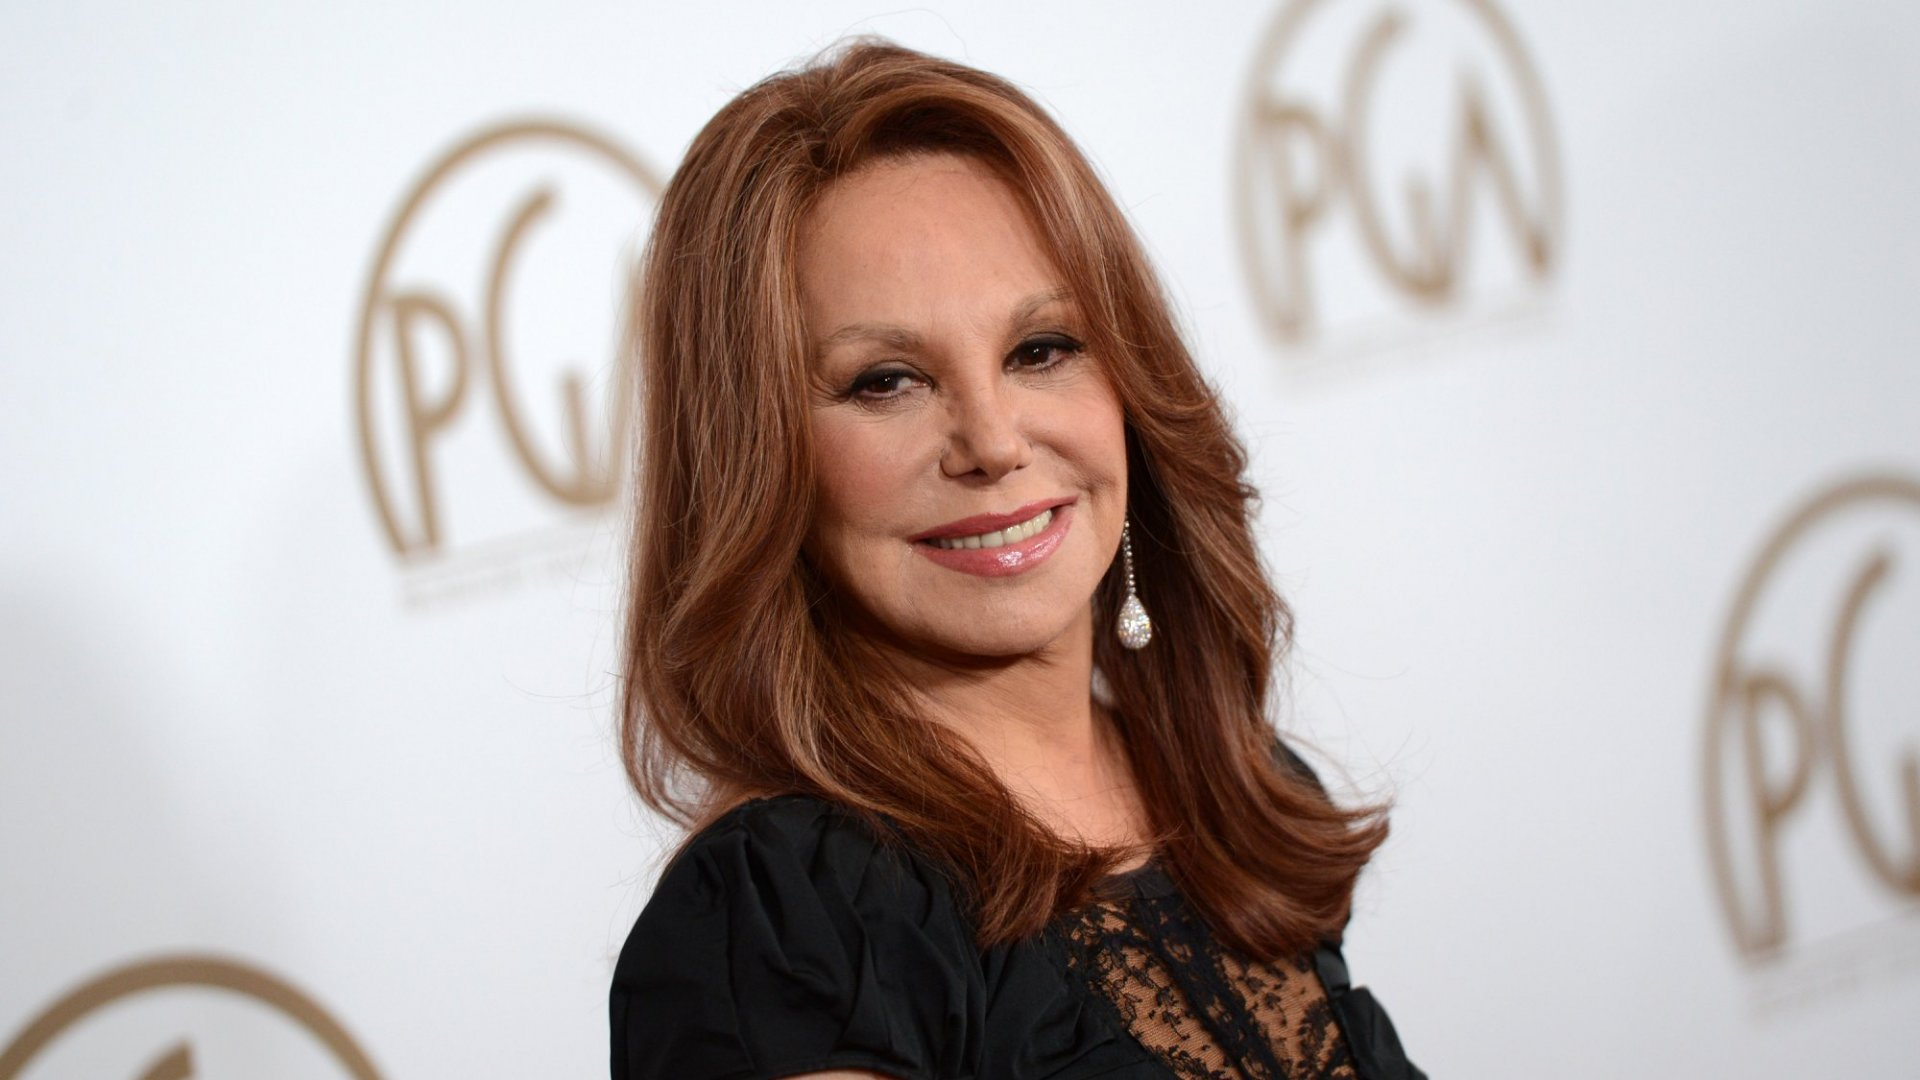 Marlo Thomas: The 2 Most Important Types of People Every Organization Needs